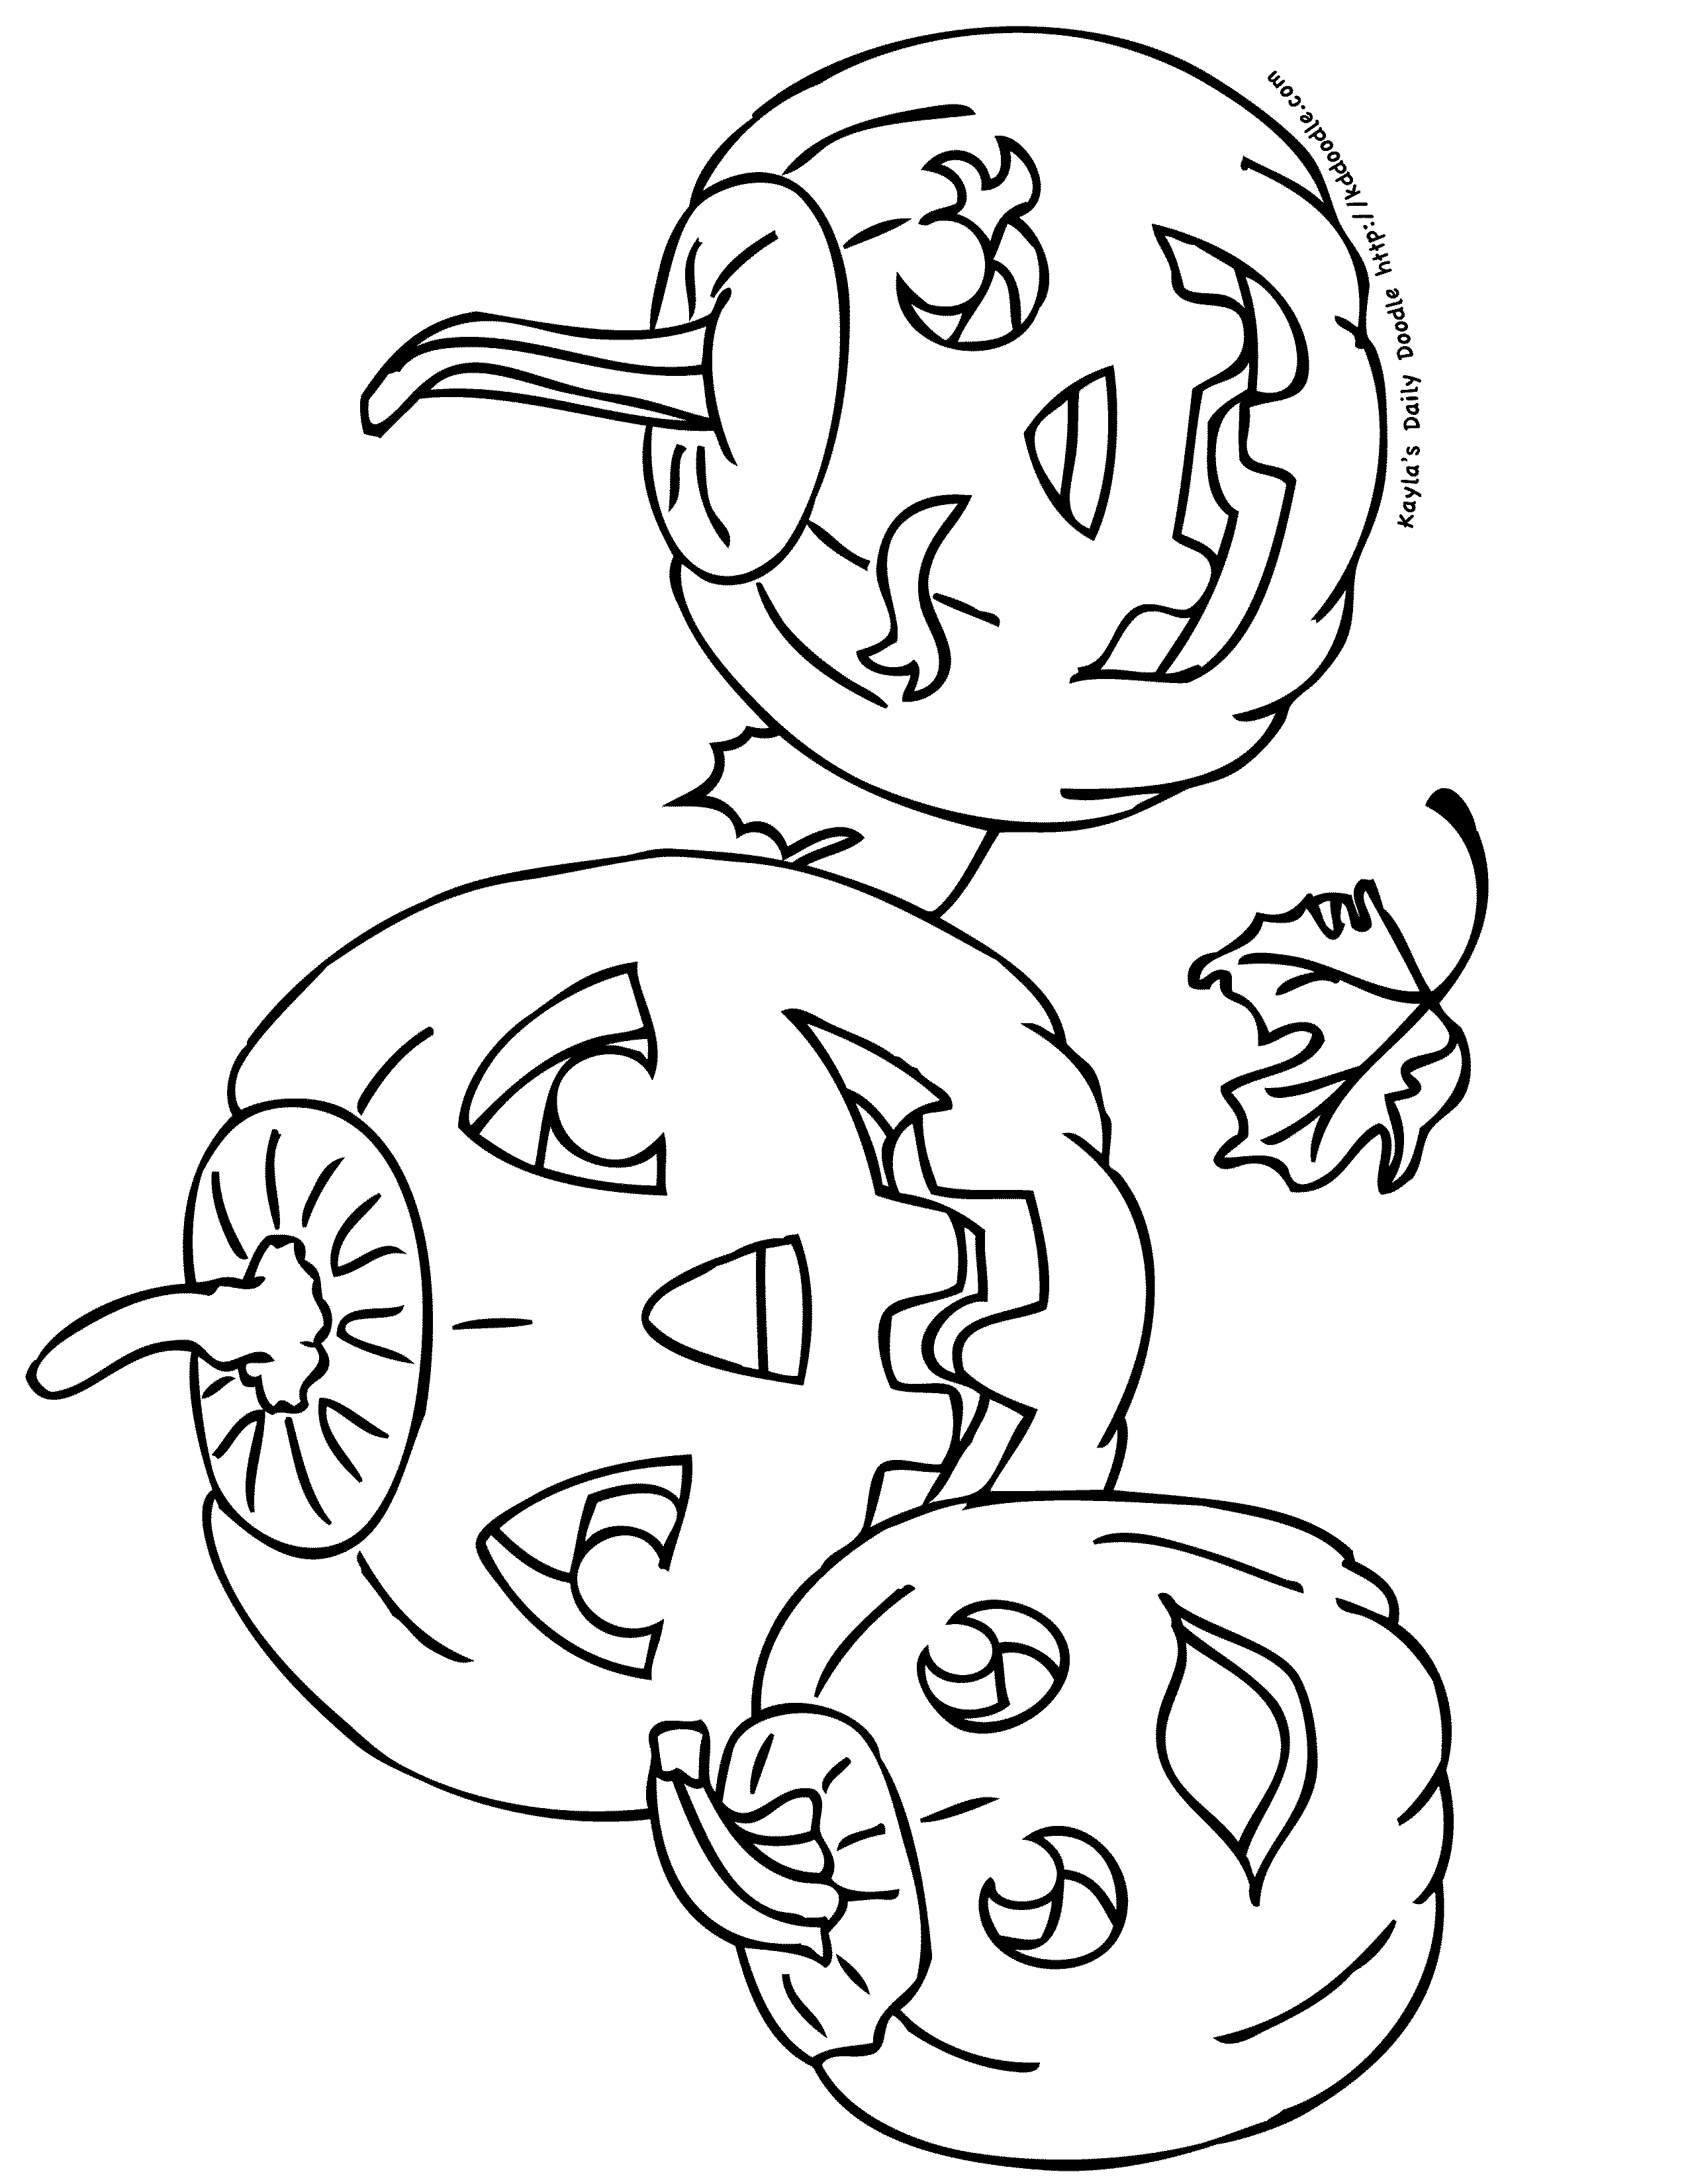 Jack O Lantern Coloring Page - Happy Jack O Lantern Patterns Coloring Home